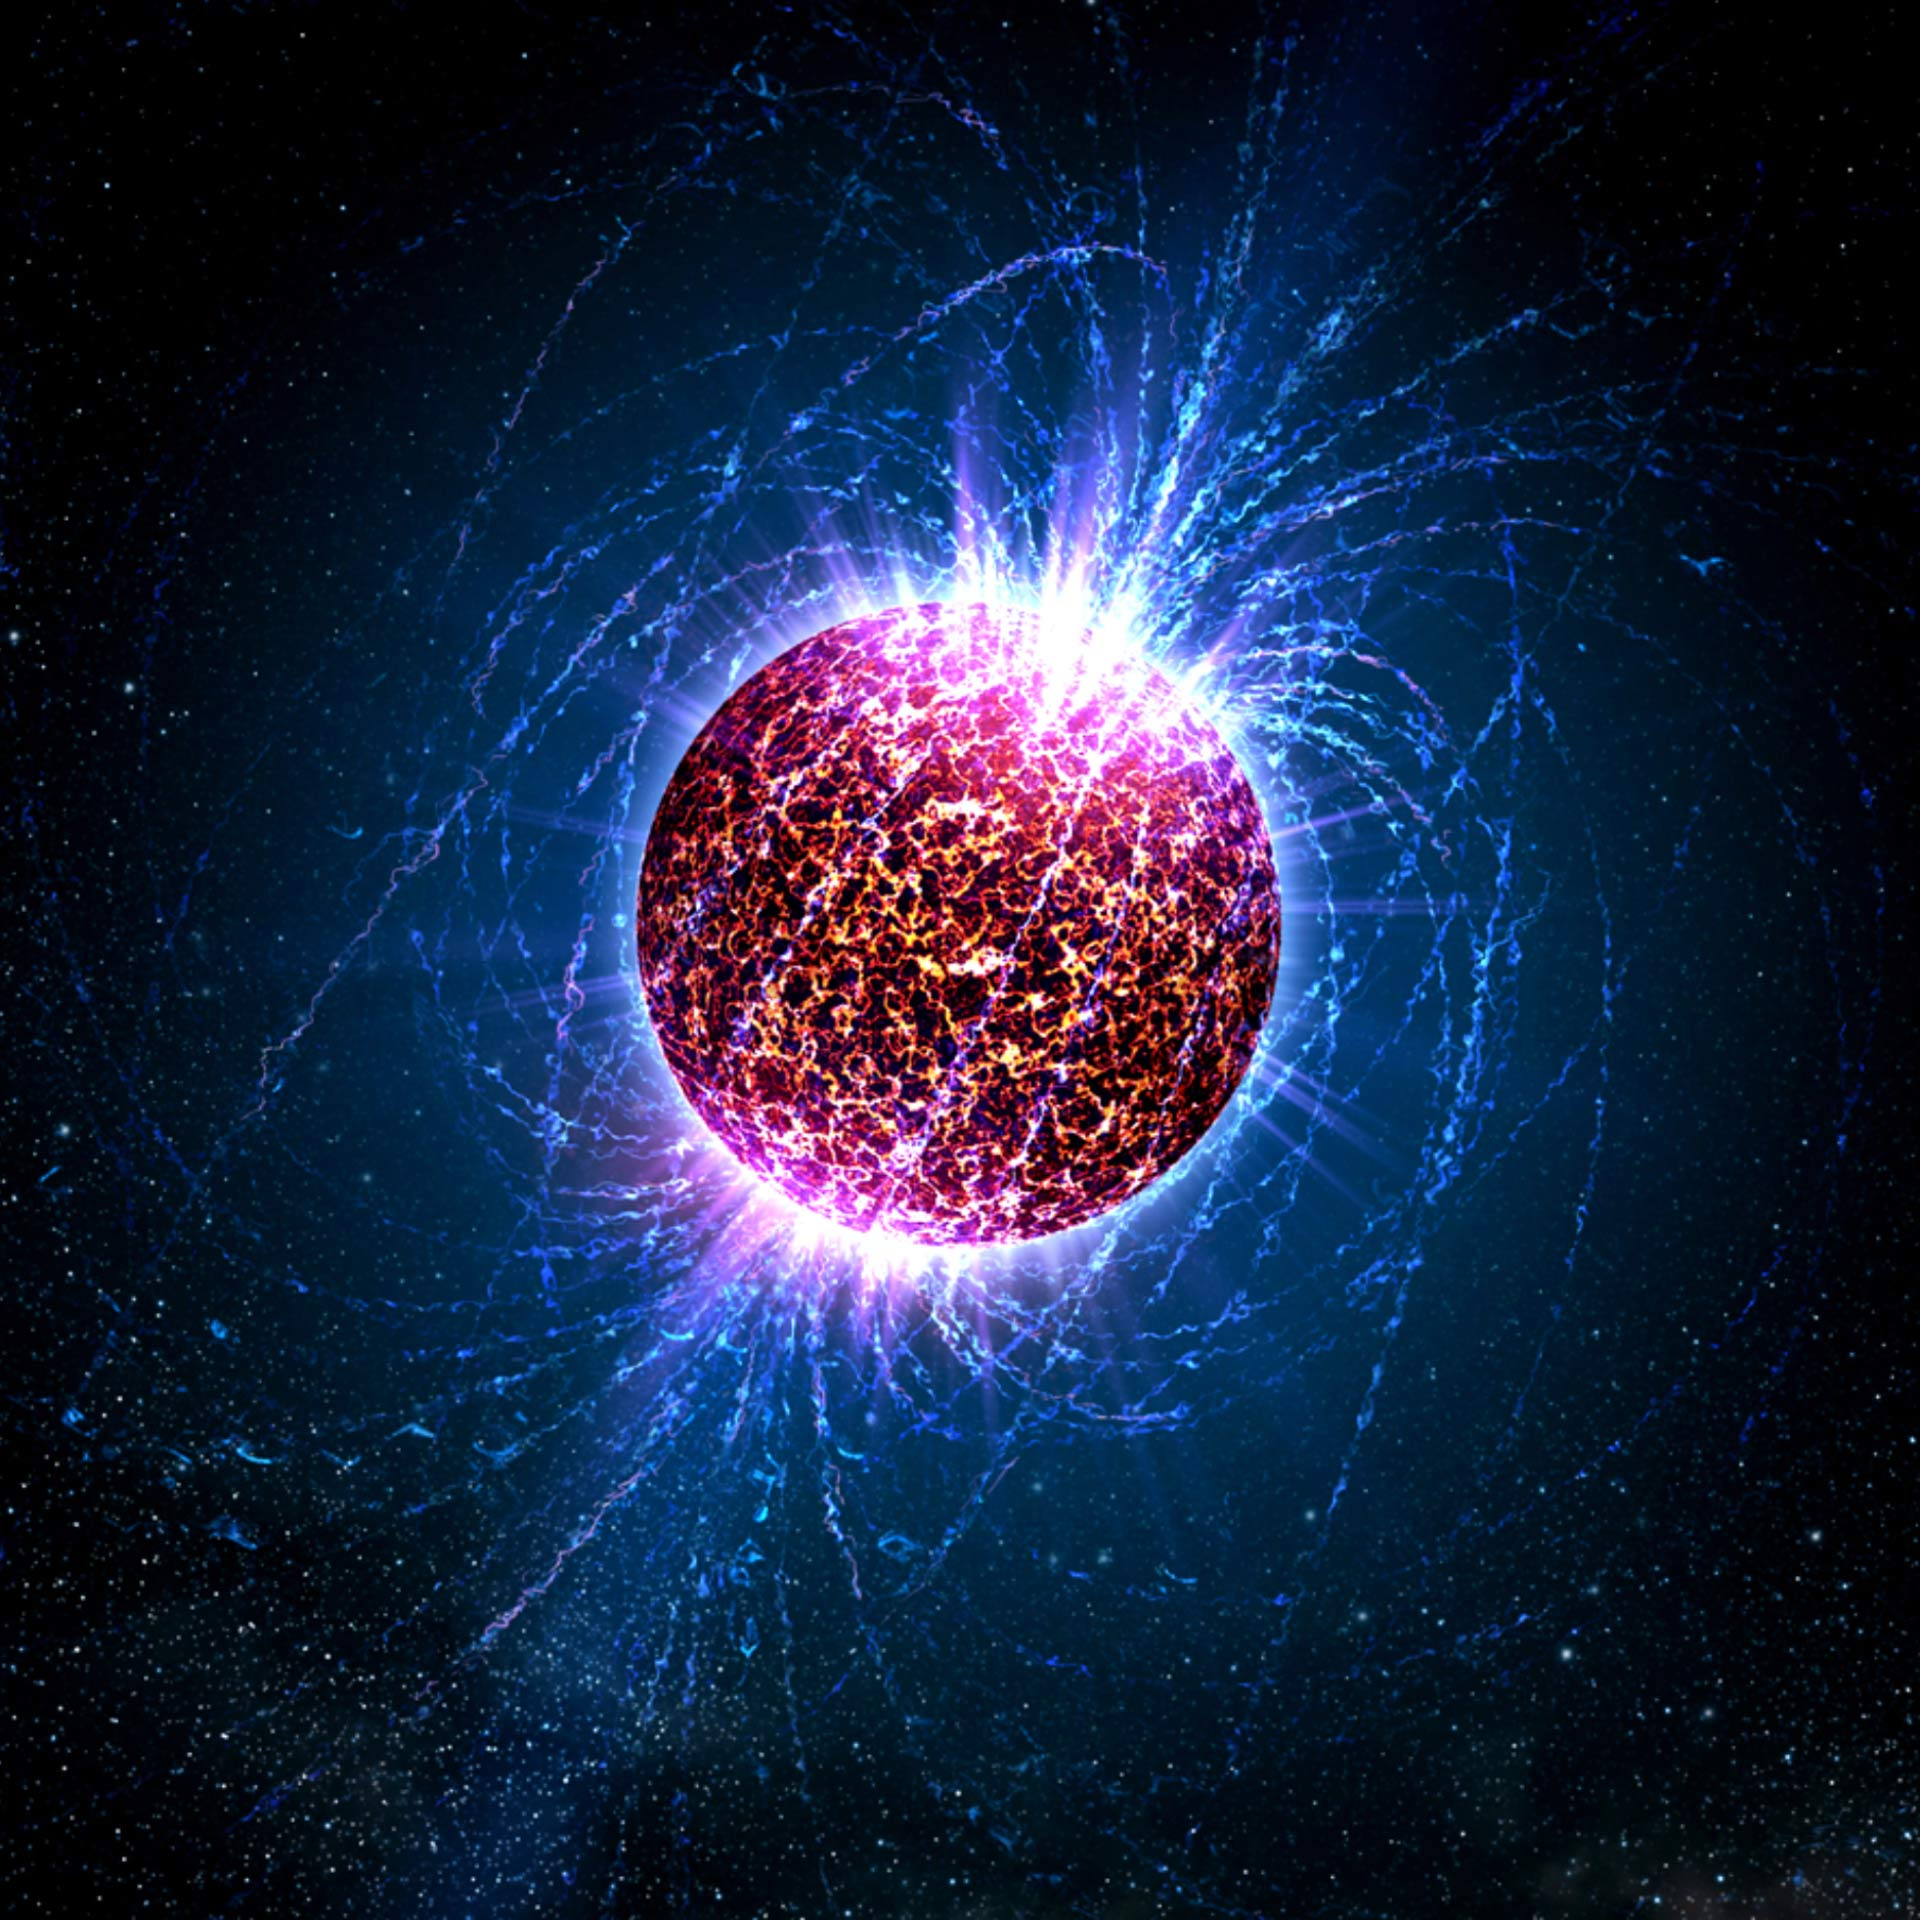 Nuclear Pasta Exotic Substance In Neutron Stars Crust